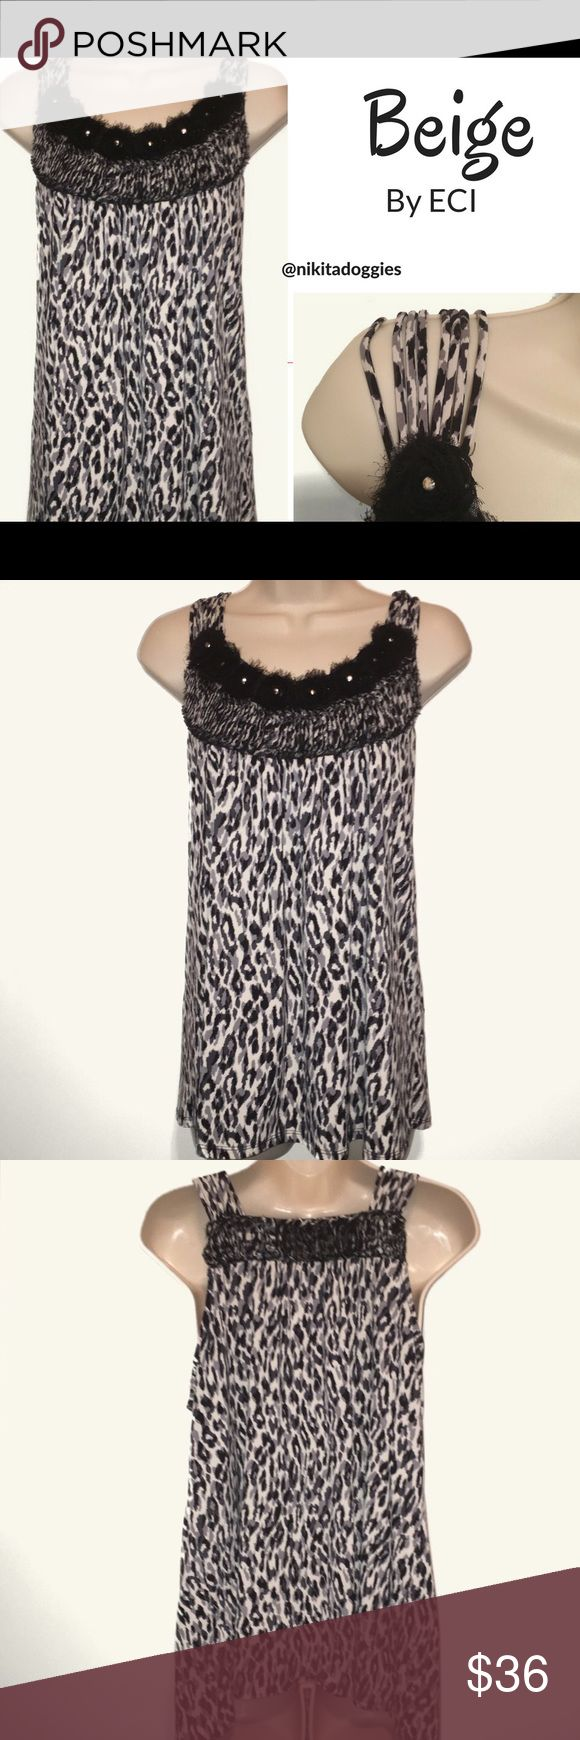 """ECI Beige Black White Animal Print Strappy Straps ECI Beige brand- Black white & gray animal print loose fitting flowing sleeveless camisole tank. Strappy shoulder straps are super cute!  Front panel black lace flowers beaded centers & gathered pleated beneath. High back with matching black lace embellishment and pleating. Really feminine and flattering!  Like new condition- no flaws/signs of wear. Armpit to armpit measures 19"""", shoulder to hem is about 27"""". Smoke free home. .04.wg.2.19 ECI…"""